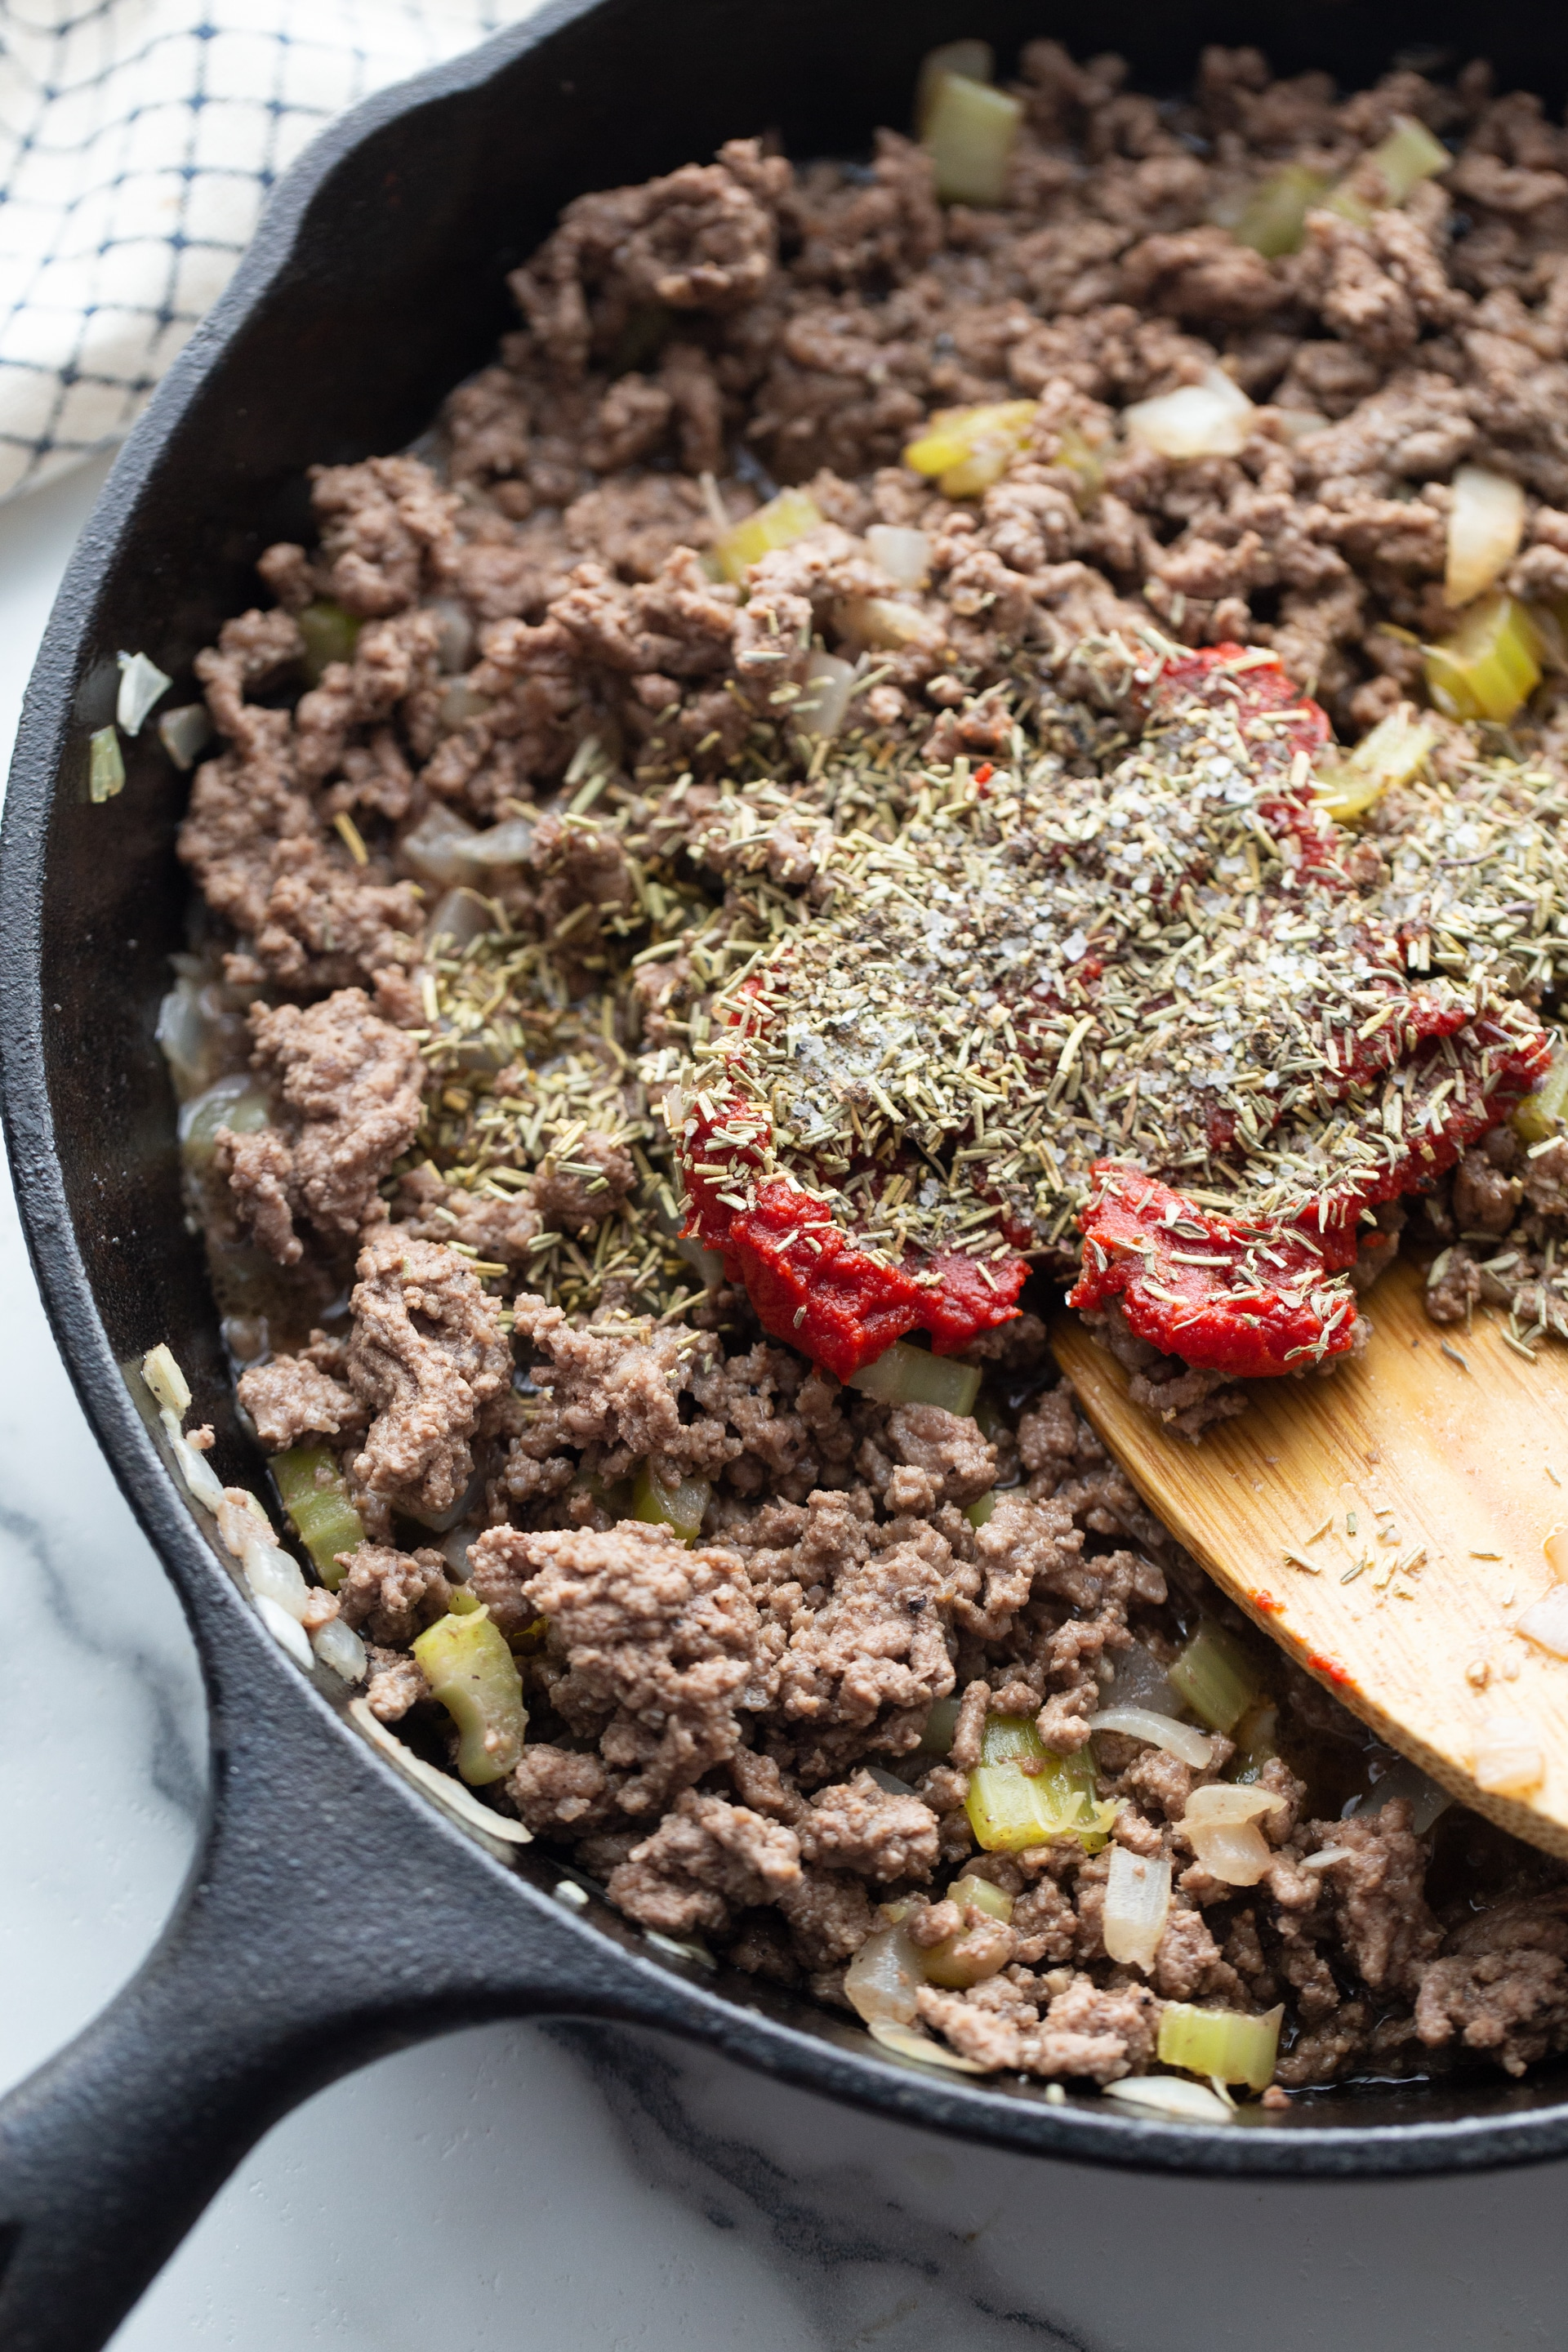 ground beef, rosemary, thyme, peppers and onions in a skillet